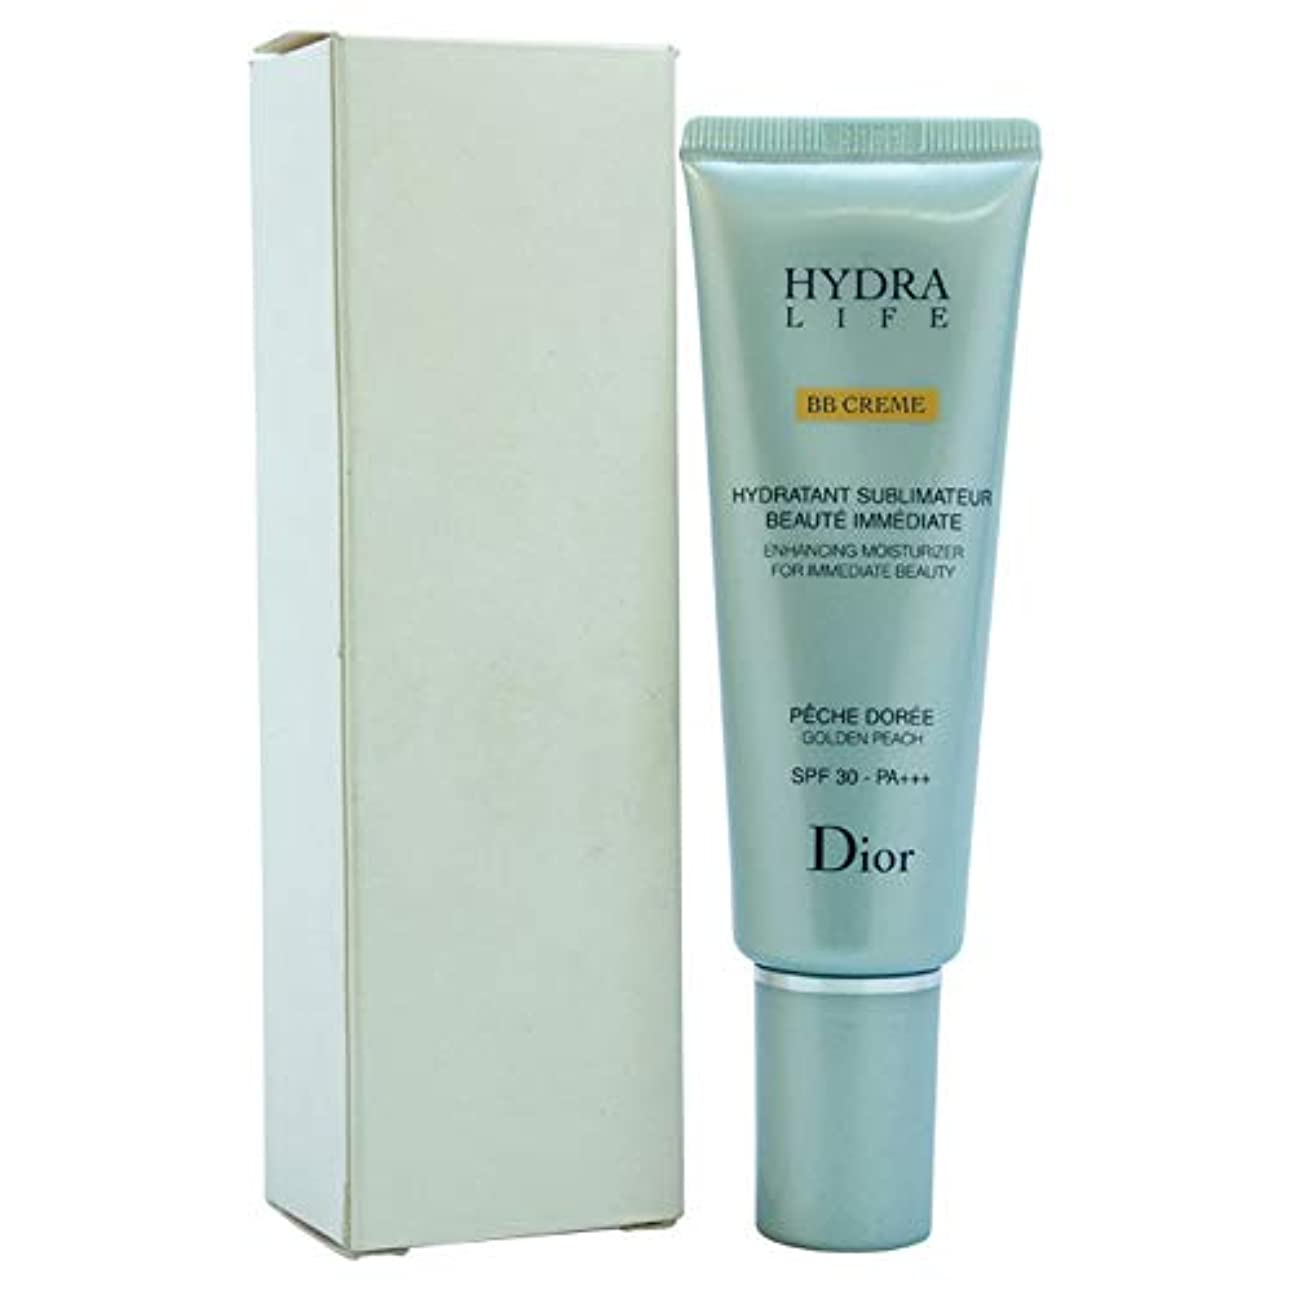 天井枯渇するパン屋Hydra Life BB Creme Enhancing Moisturizer For Immediate Beauty SPF 30 - # 02 Gol